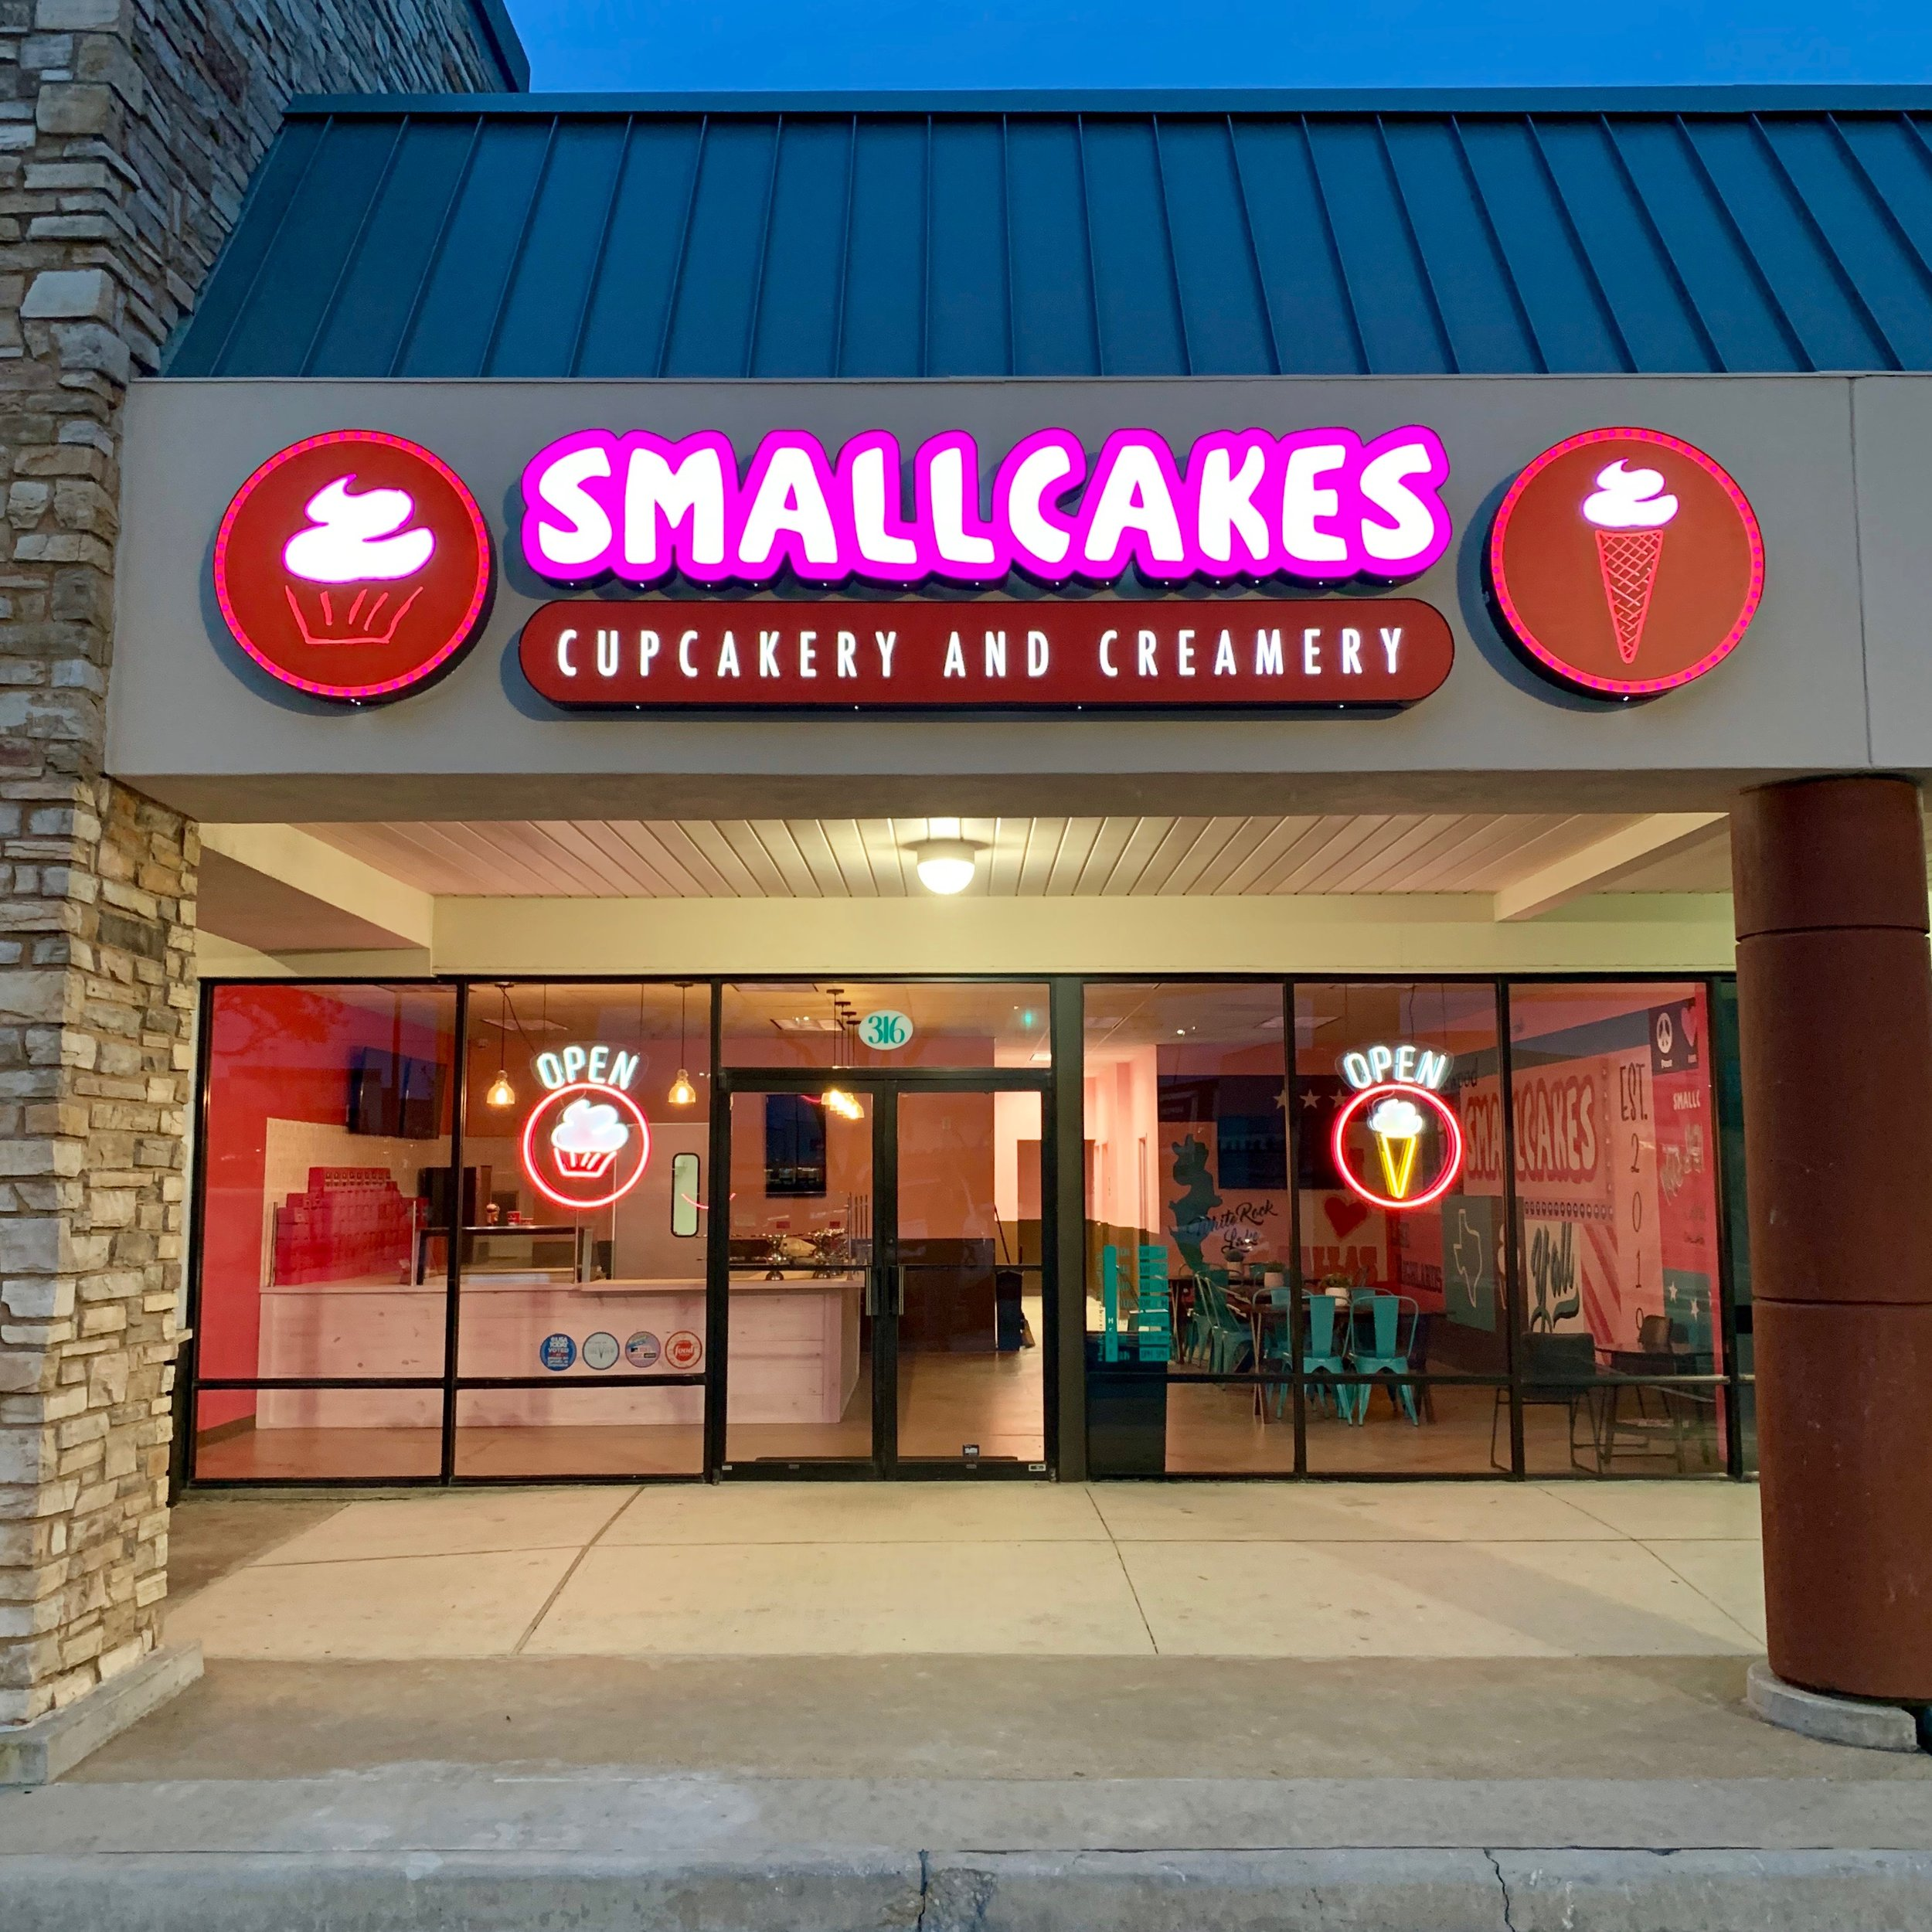 SmallCakes Medallion Center - SmallCakes DallasLocated in Medallion Center6464 East Northwest Highway, Suite 316Dallas, TX, 75214(469) 994-0284Hours:Monday through Saturday - 10 am to 8 pmSunday - noon to 6 pm